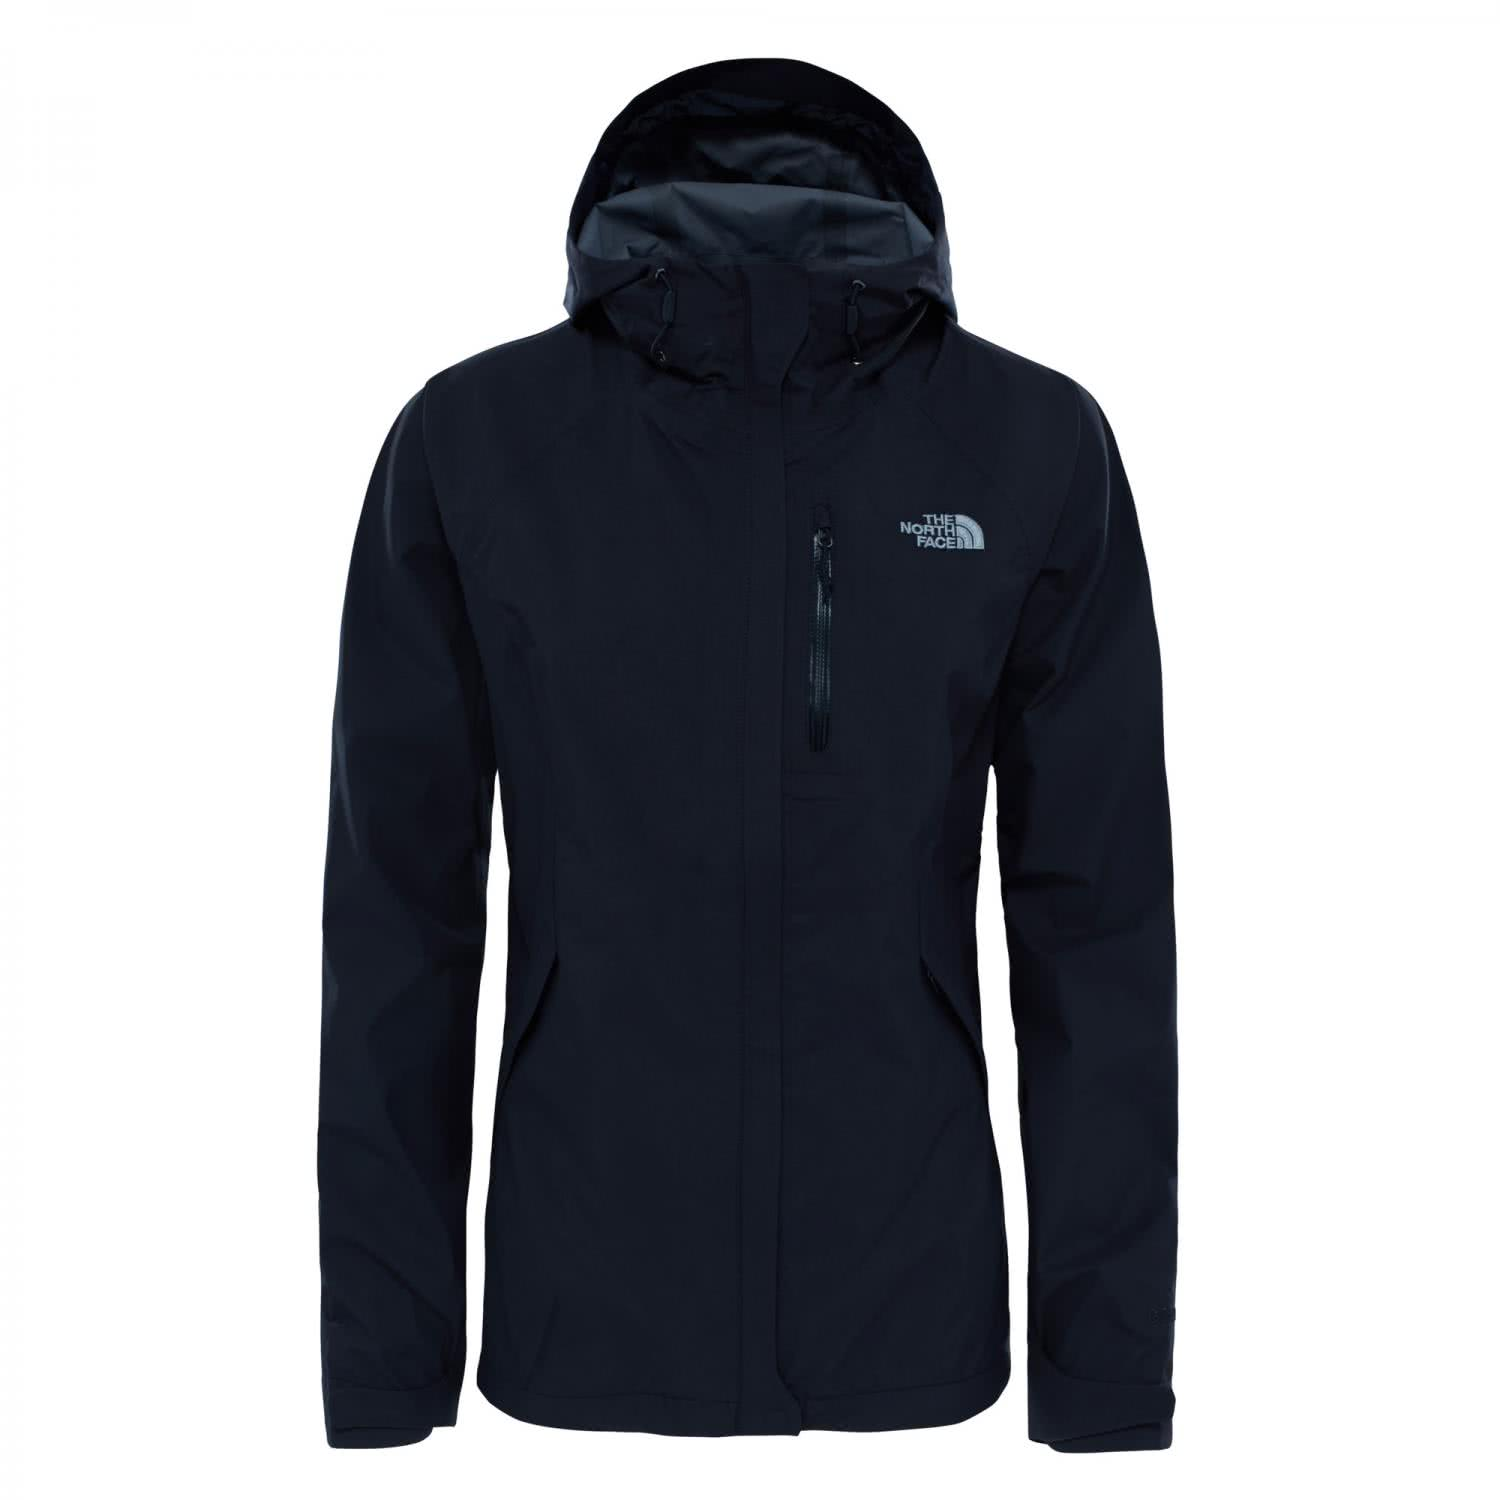 the north face damen regenjacke dryzzle jacket cur7. Black Bedroom Furniture Sets. Home Design Ideas